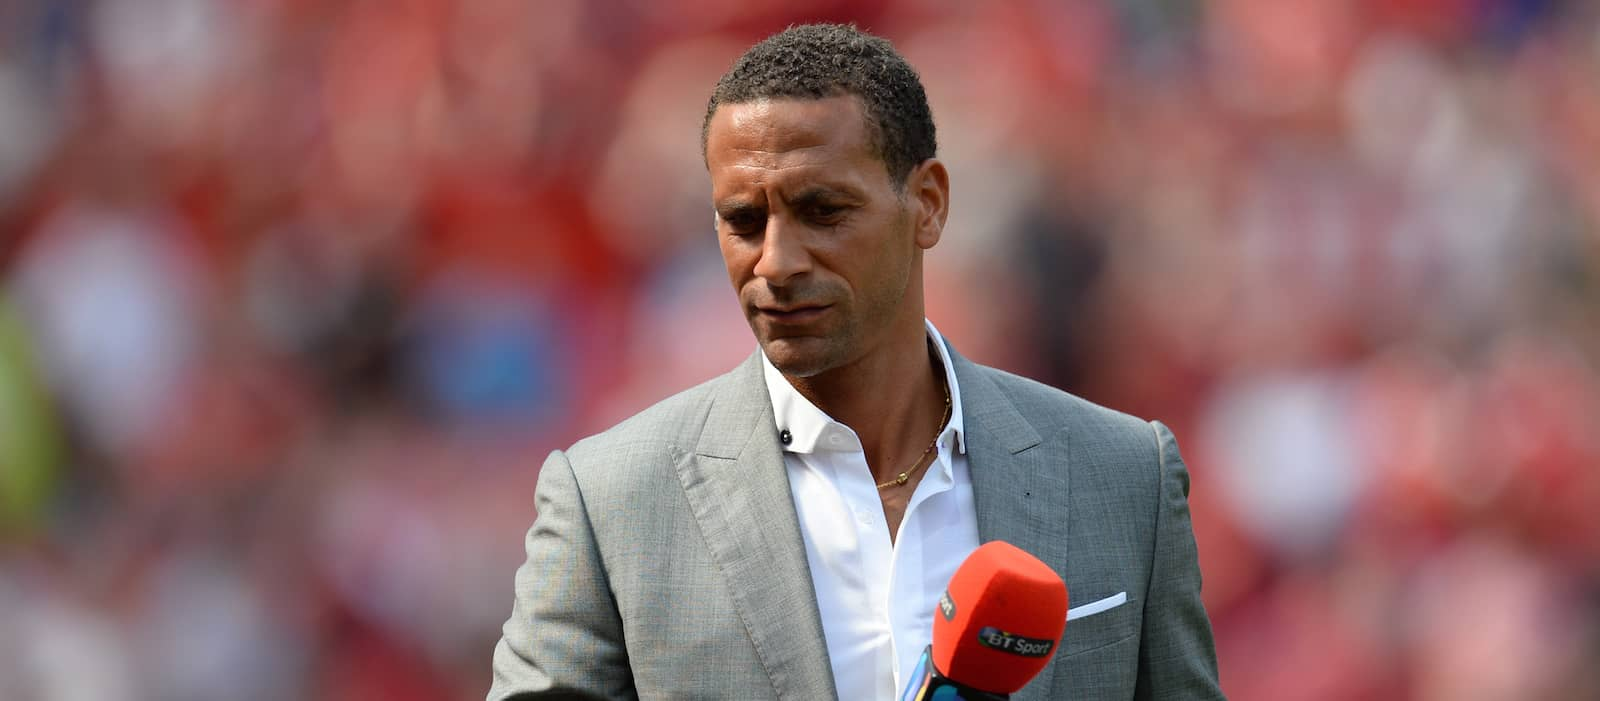 Rio Ferdinand warns Manchester United stars over work ethic and mentality